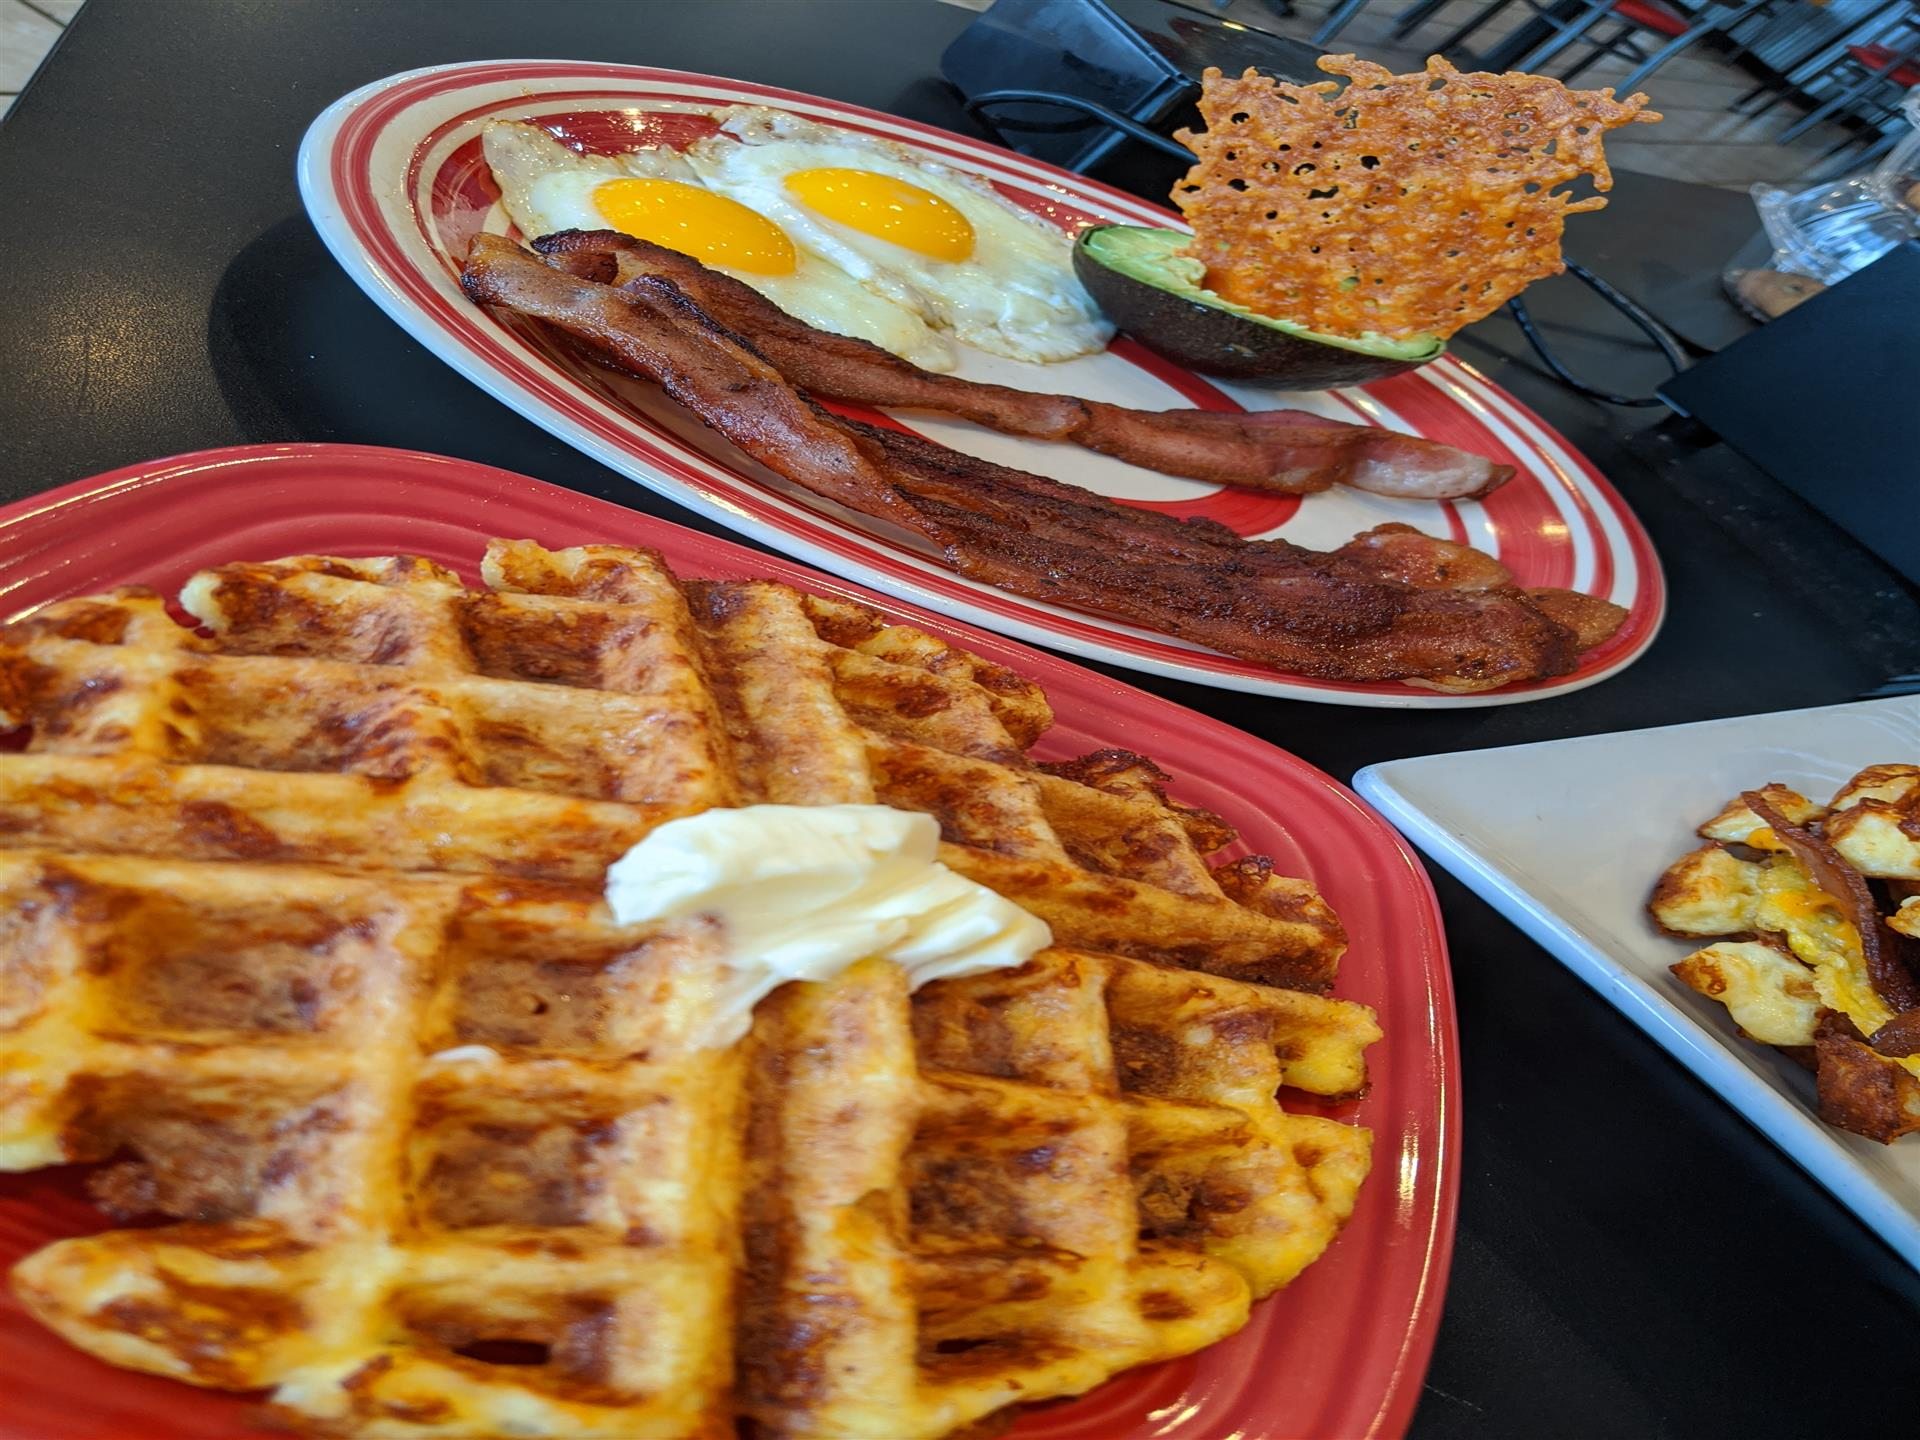 A waffle with butter next to bcaon and eggs